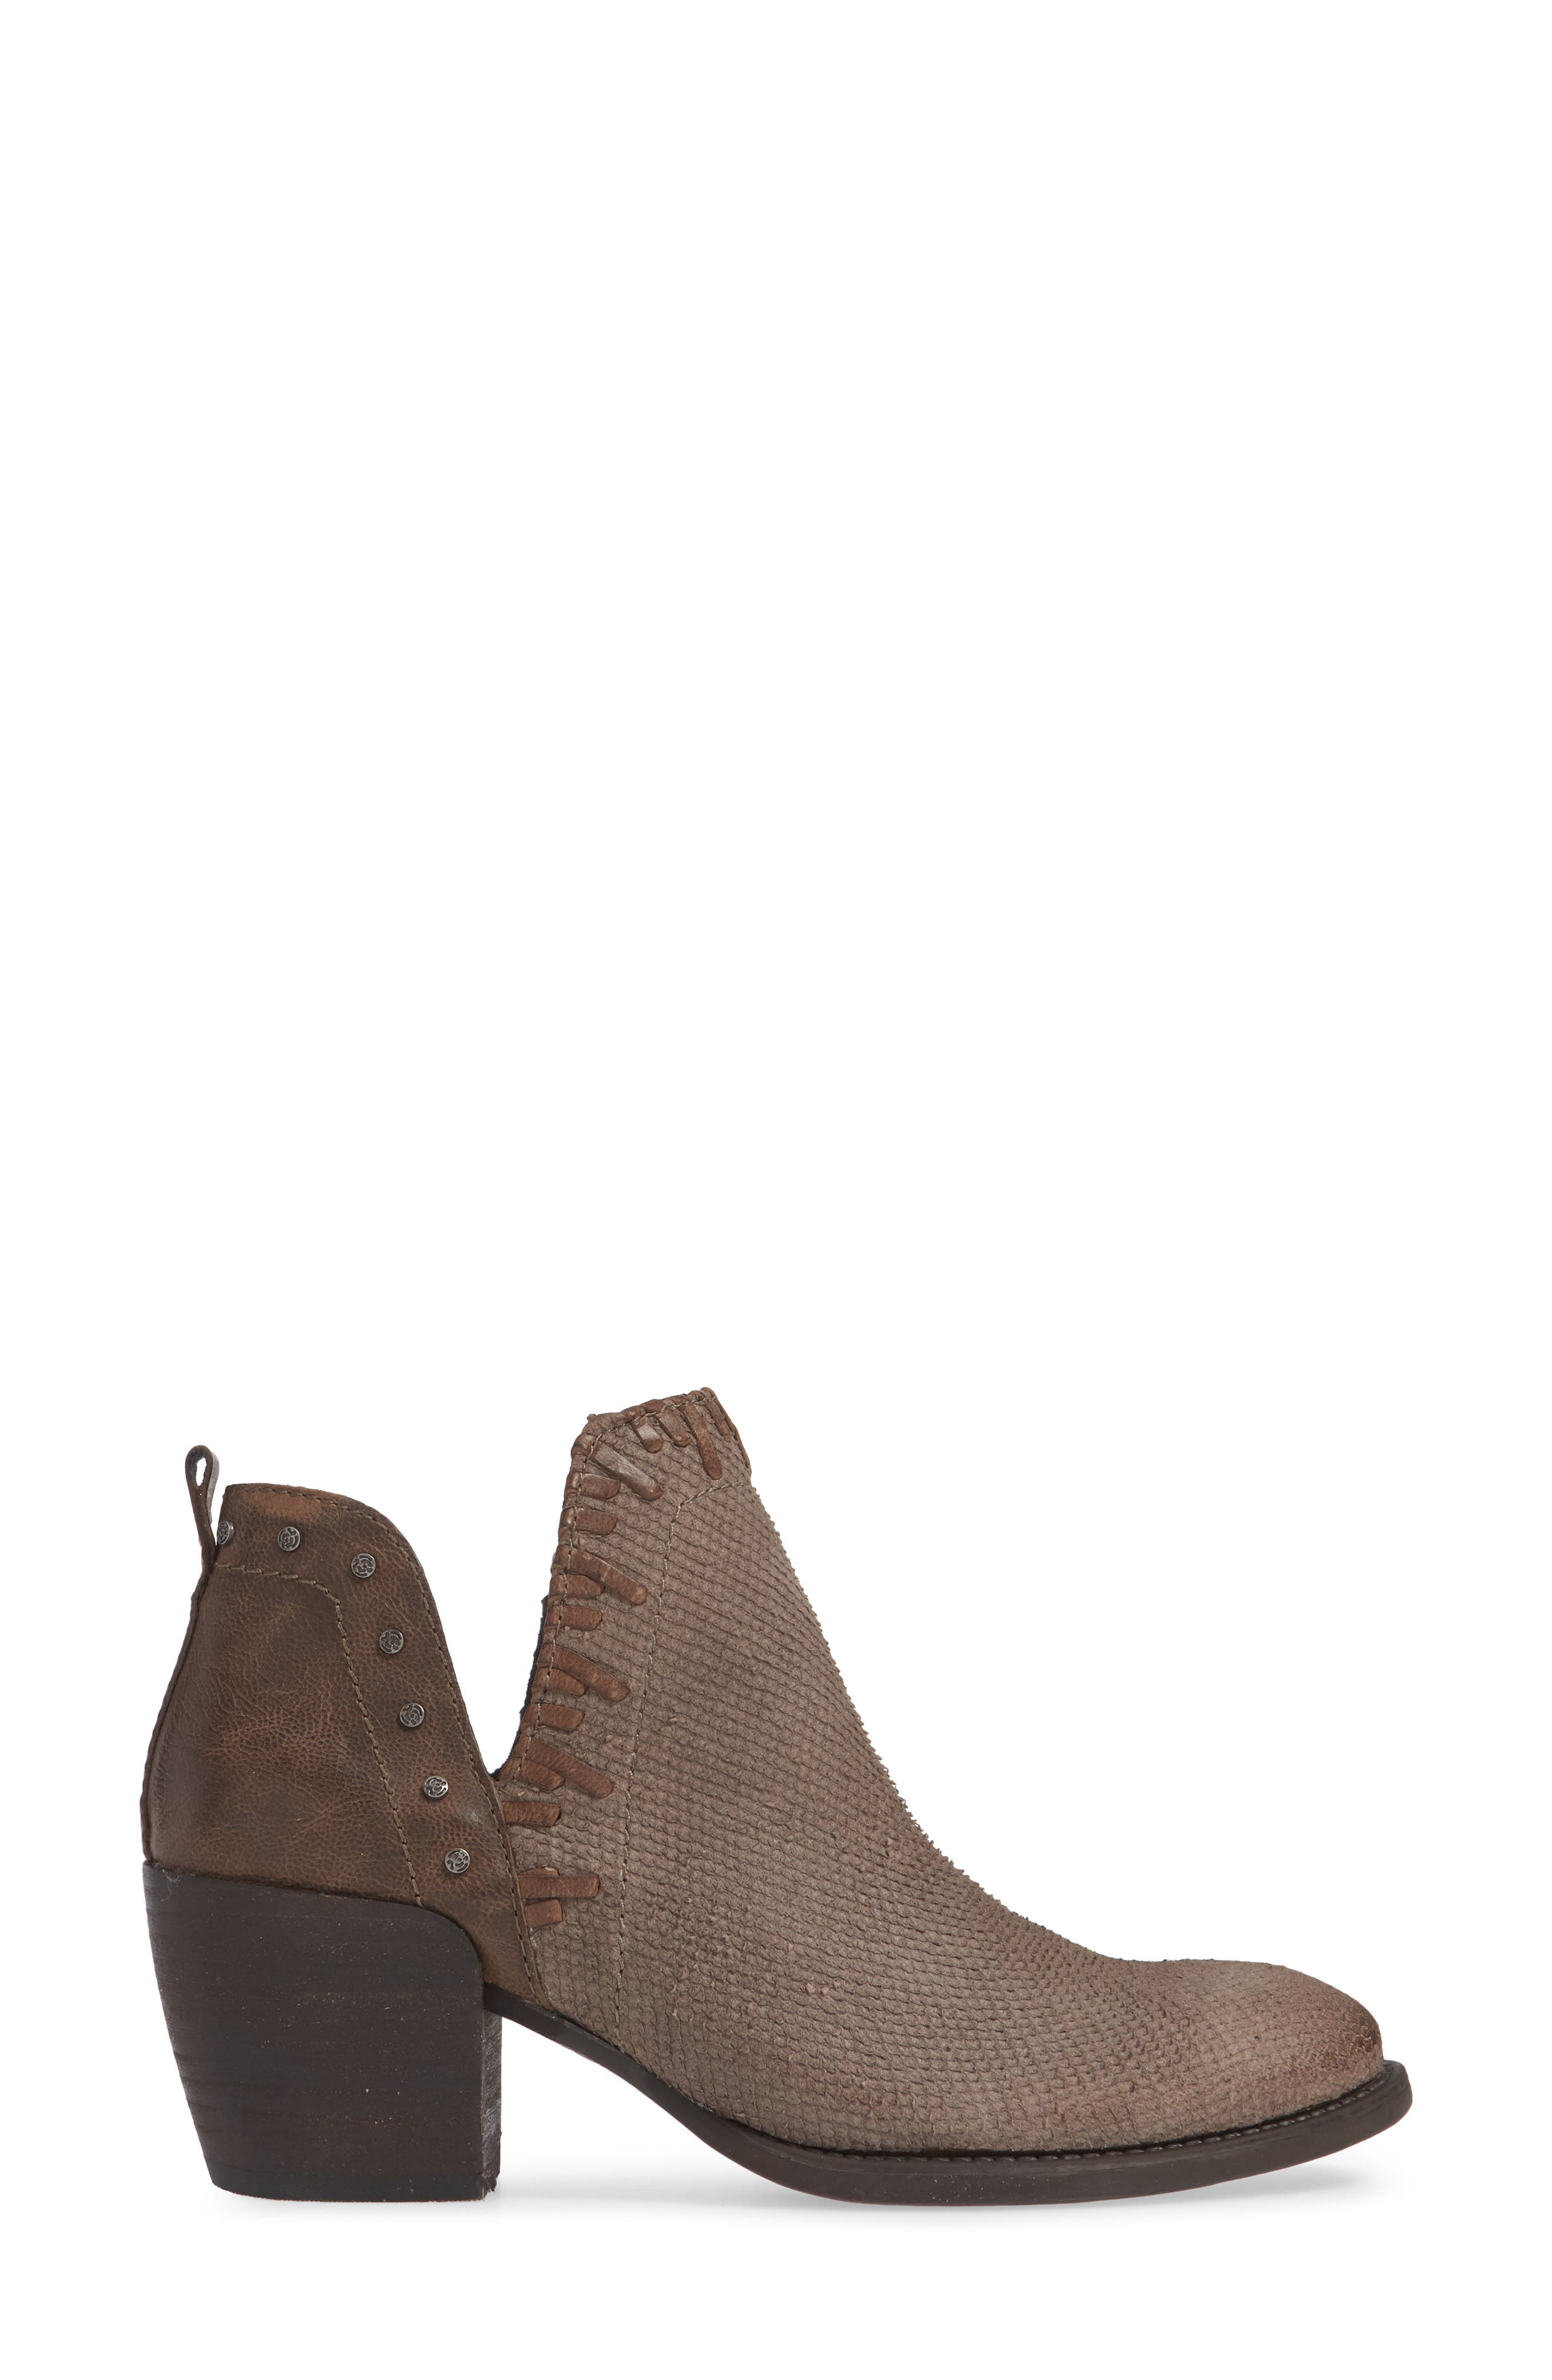 Santa Fe Ankle Bootie,                             Alternate thumbnail 3, color,                             CINDER LEATHER